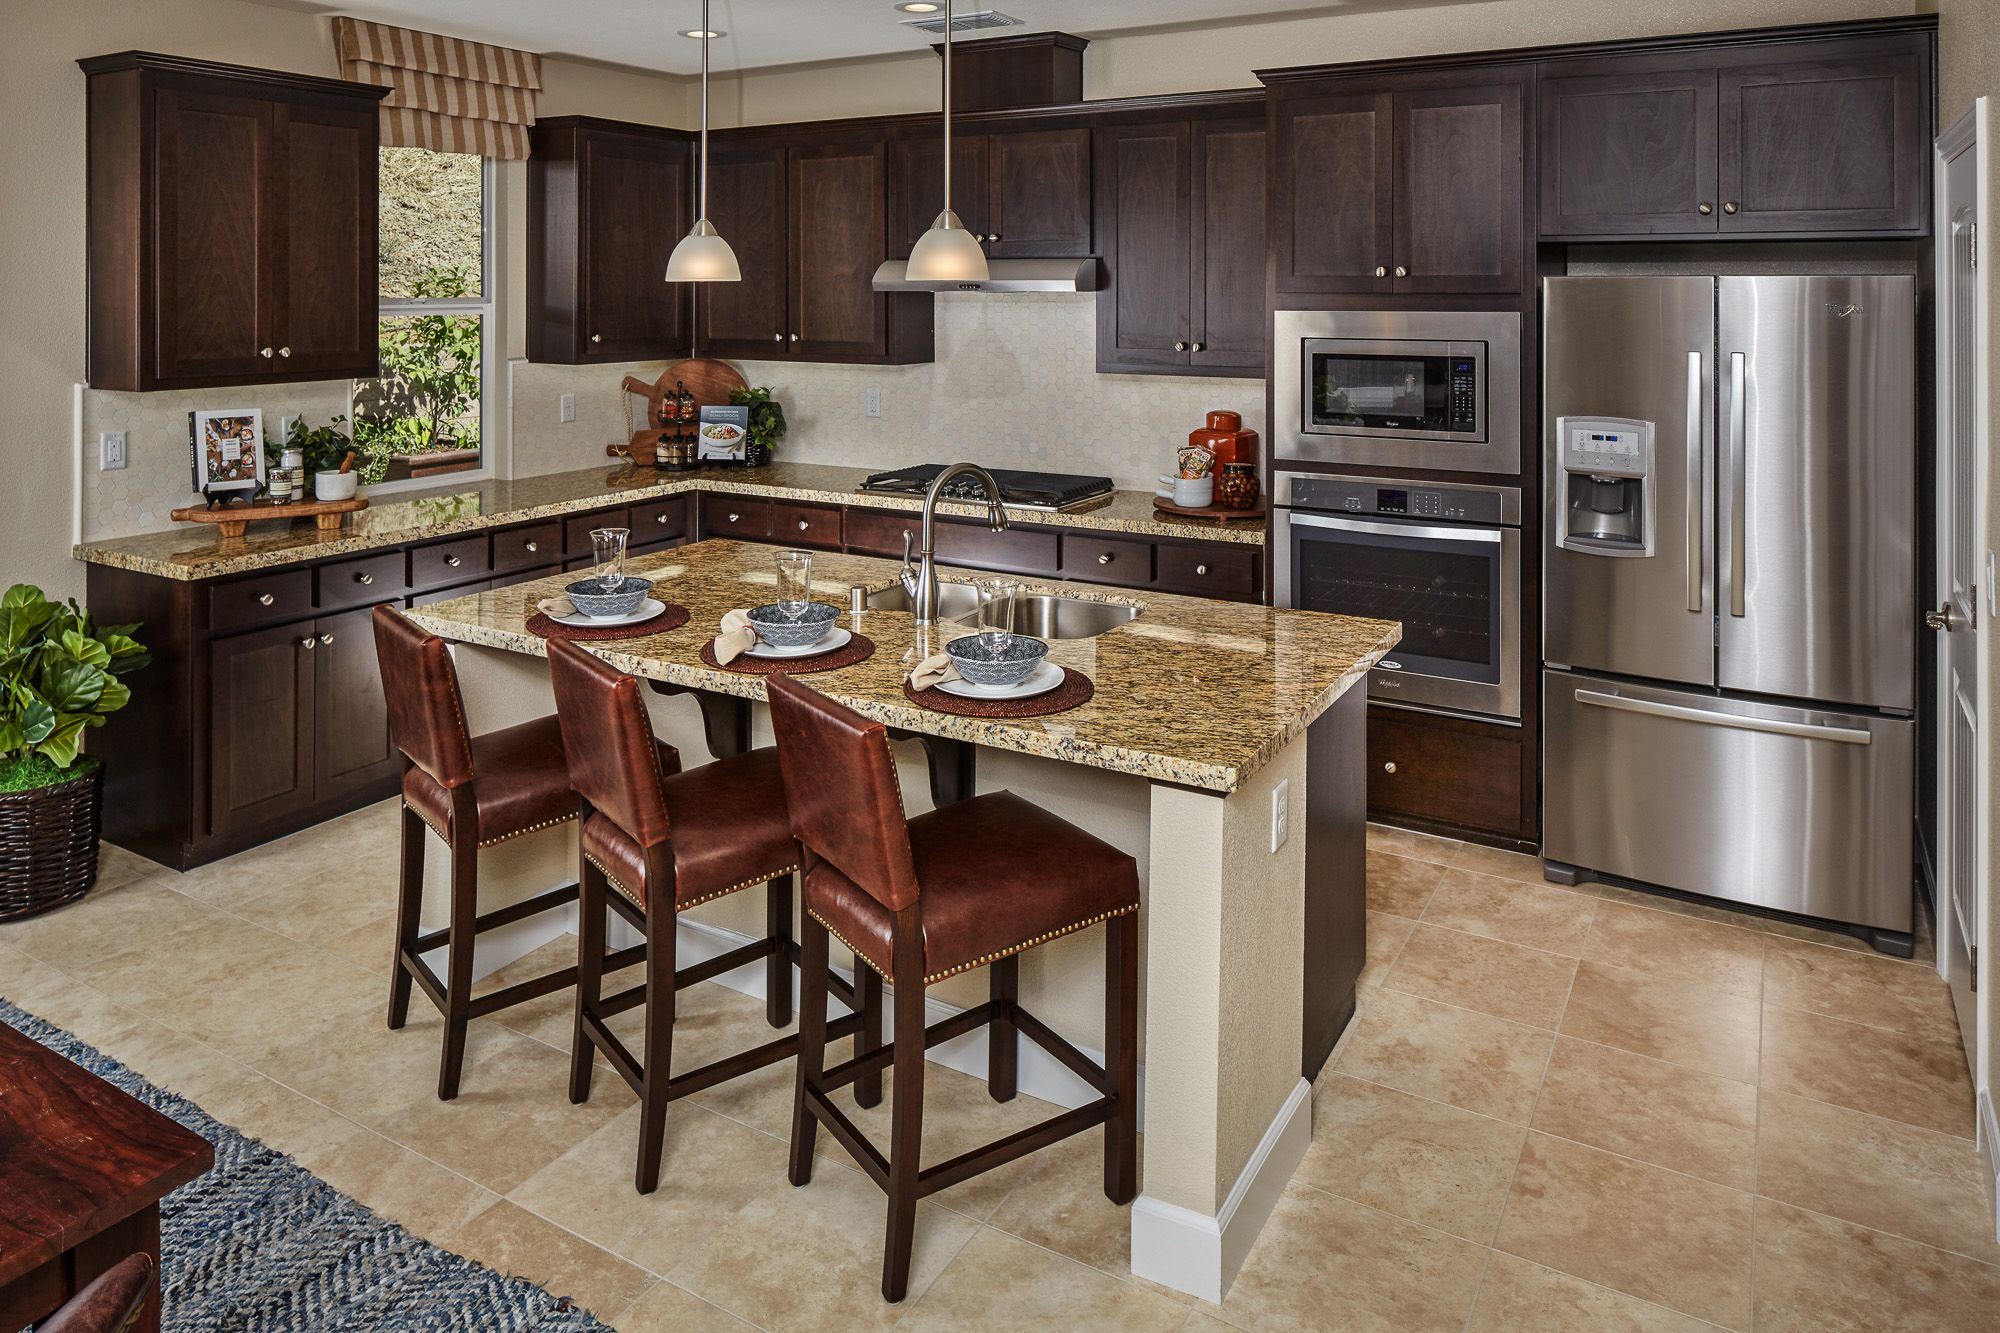 The Willows Plan 1 Kitchendesign Granitecountertops Darkwoodcabinets With Images Home Kitchens Granite Kitchen Island New Homes For Sale